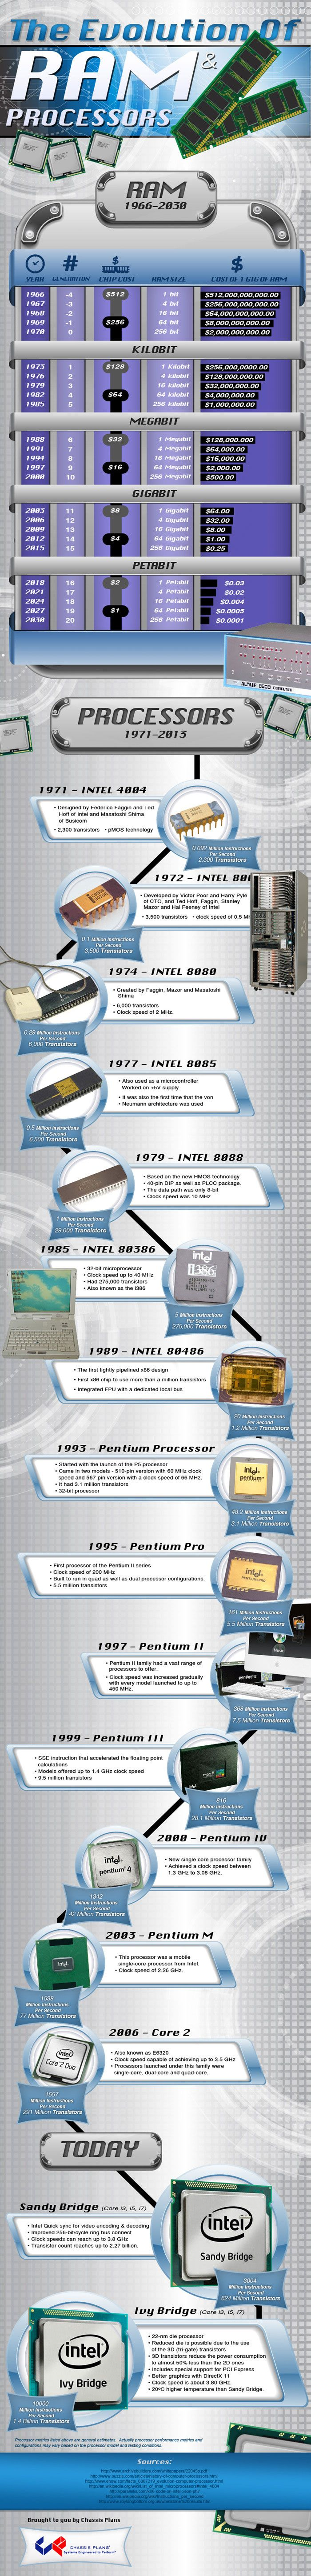 Ram and Processor History: See the stride of memory and processor efficiency happened since the early stages of computer technology. Just consider that in 1966 1GB RAM would cost you only $512 billion!